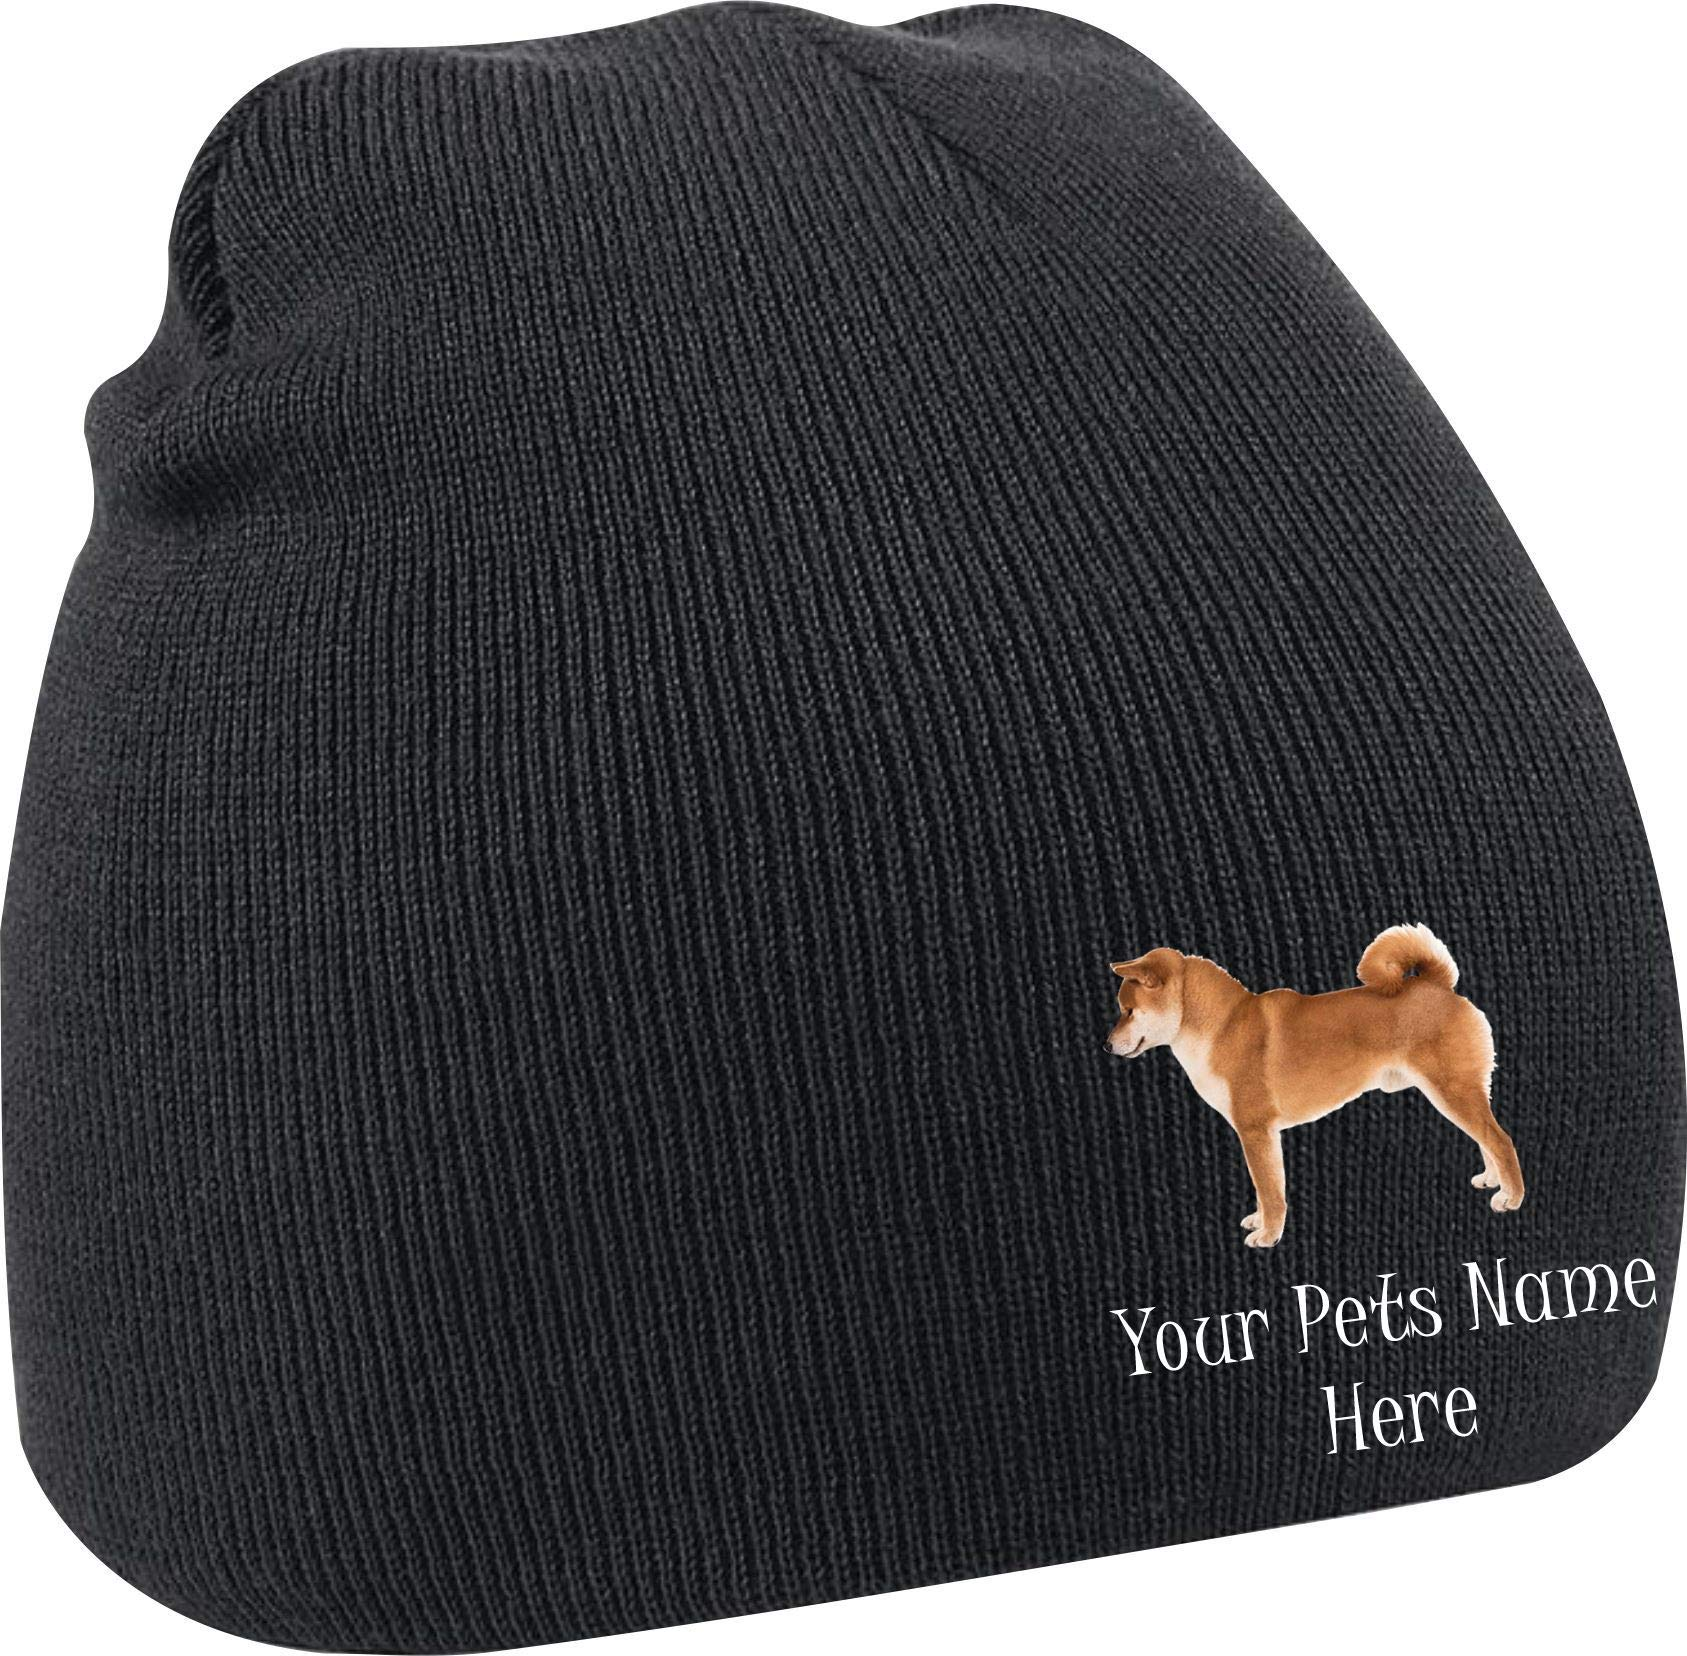 Taurus Clothing Shiba Inu Dog Personalised Embroidered Beanie Black